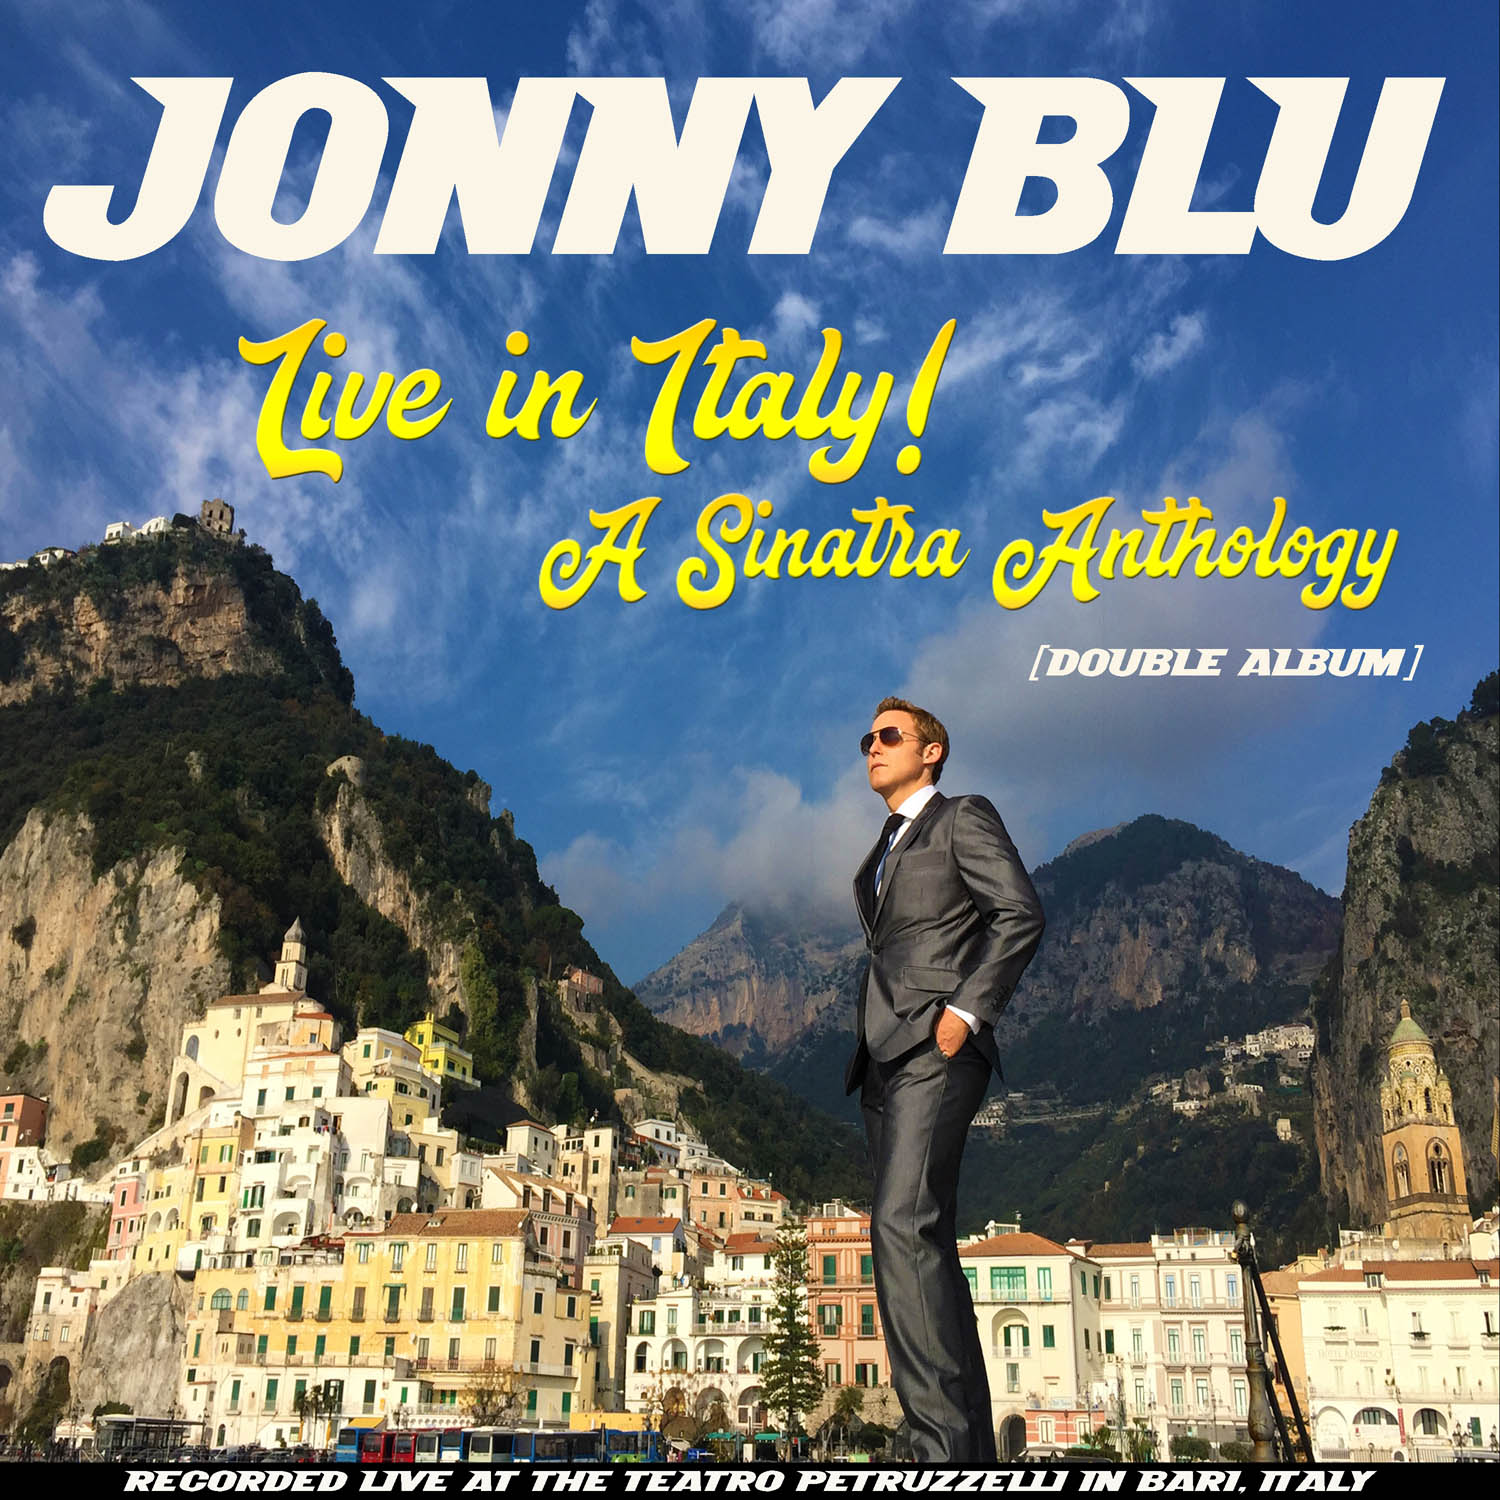 """Jonny Blu """"Live in Italy! A Sinatra Anthology (Double Album)"""" Album cover"""